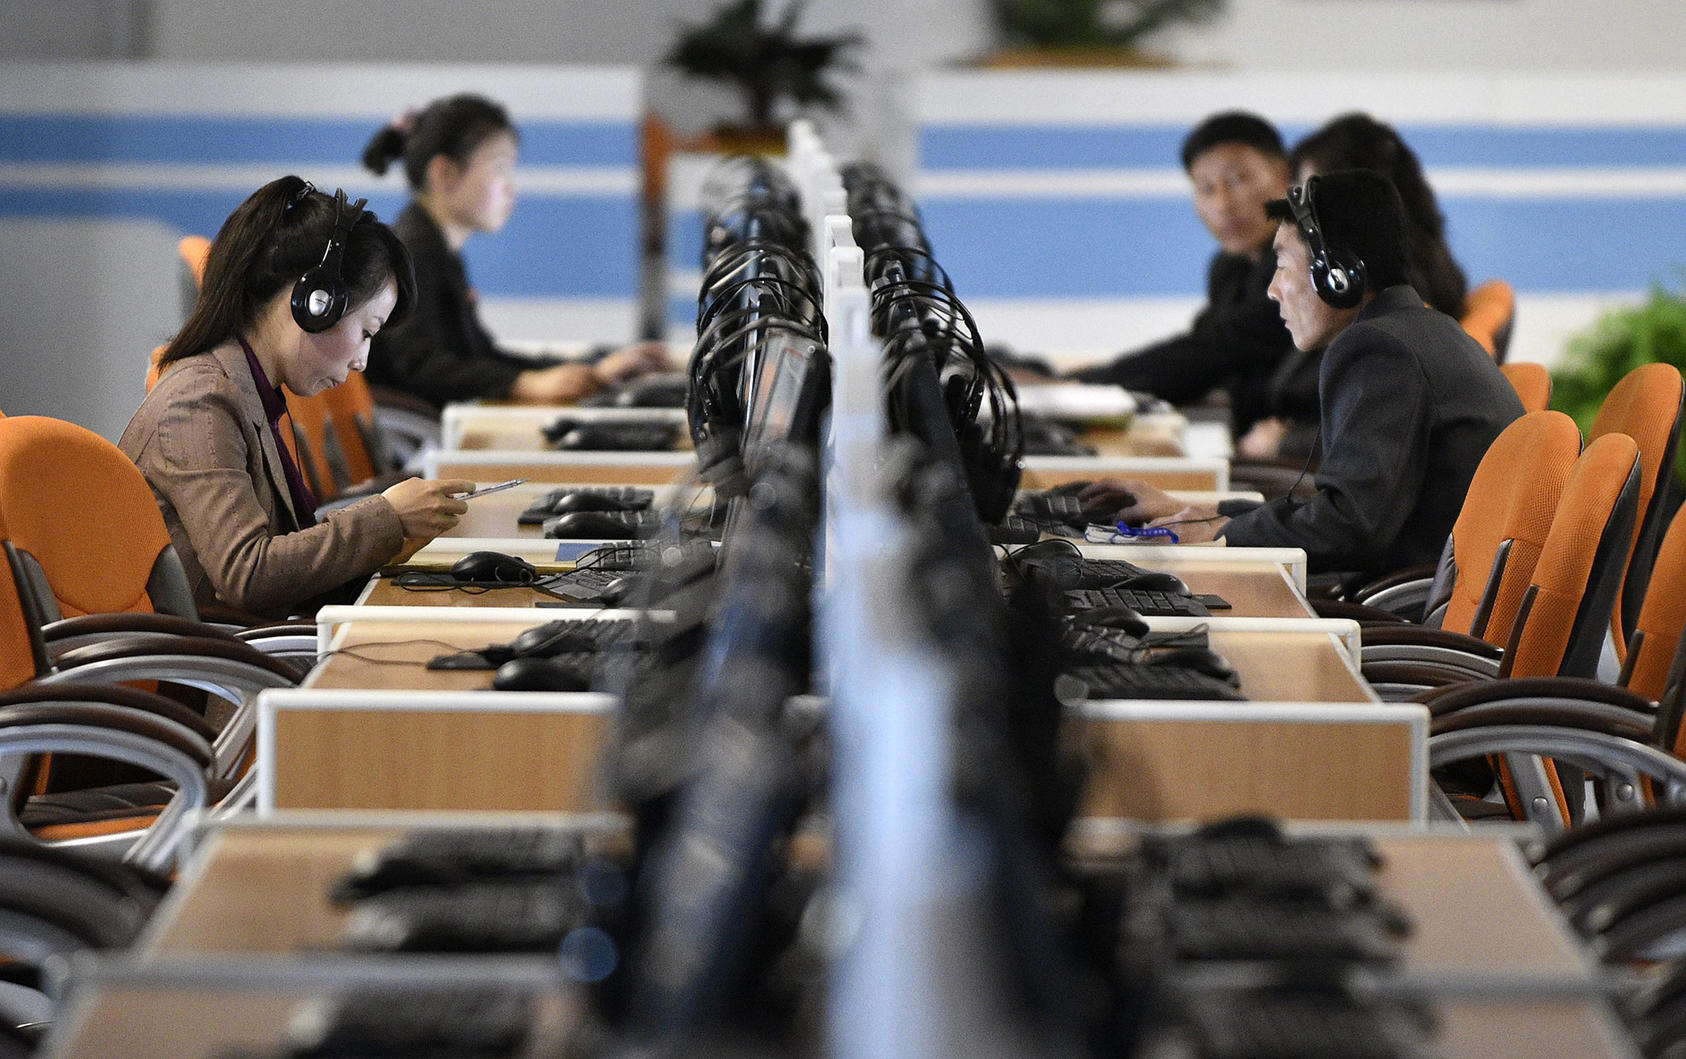 Visitors use computers at the Sci-Tech Complex, a repository for digital information located on Ssuk Island in Pyongyang. (Photo by Franck Robichon/ EPA/ Shutterstock)